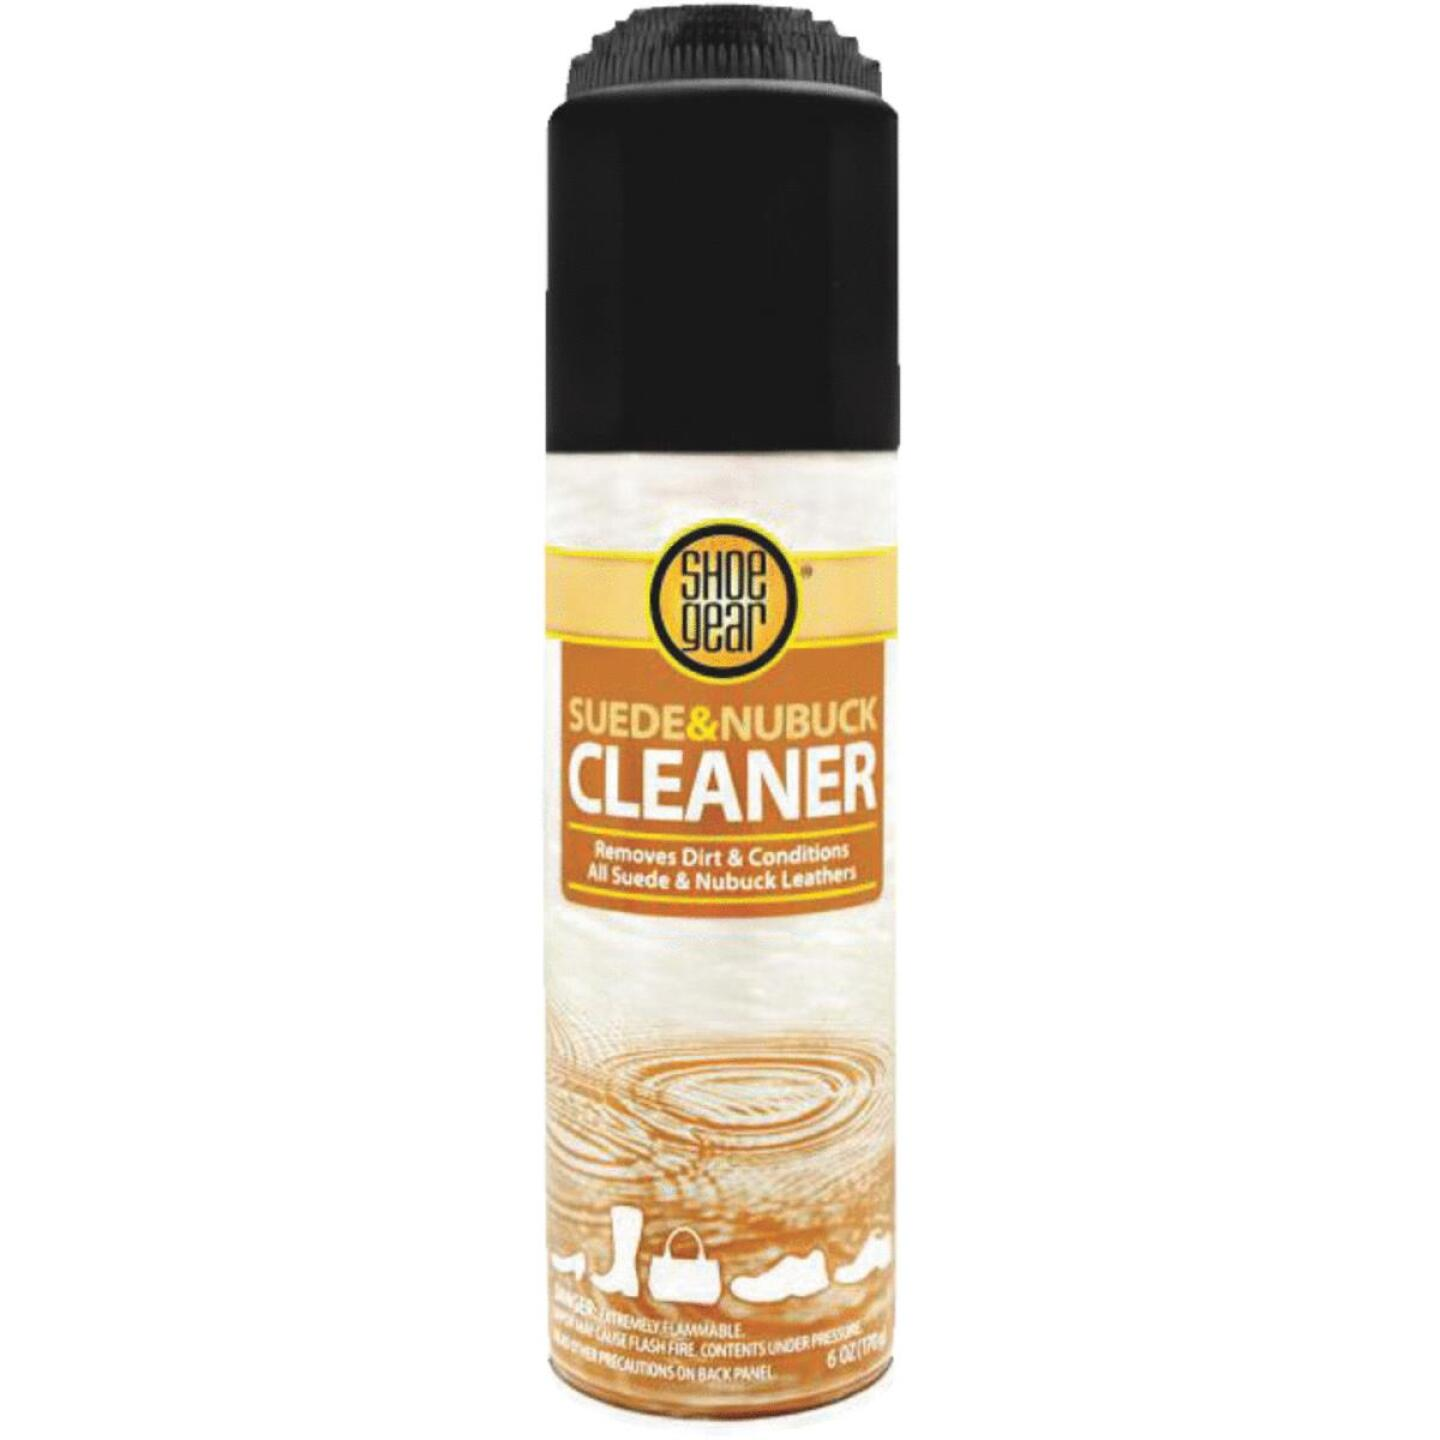 Shoe Gear 5.5 Oz. Aerosol Spray Suede & Nubuck Cleaner Leather Care Image 1